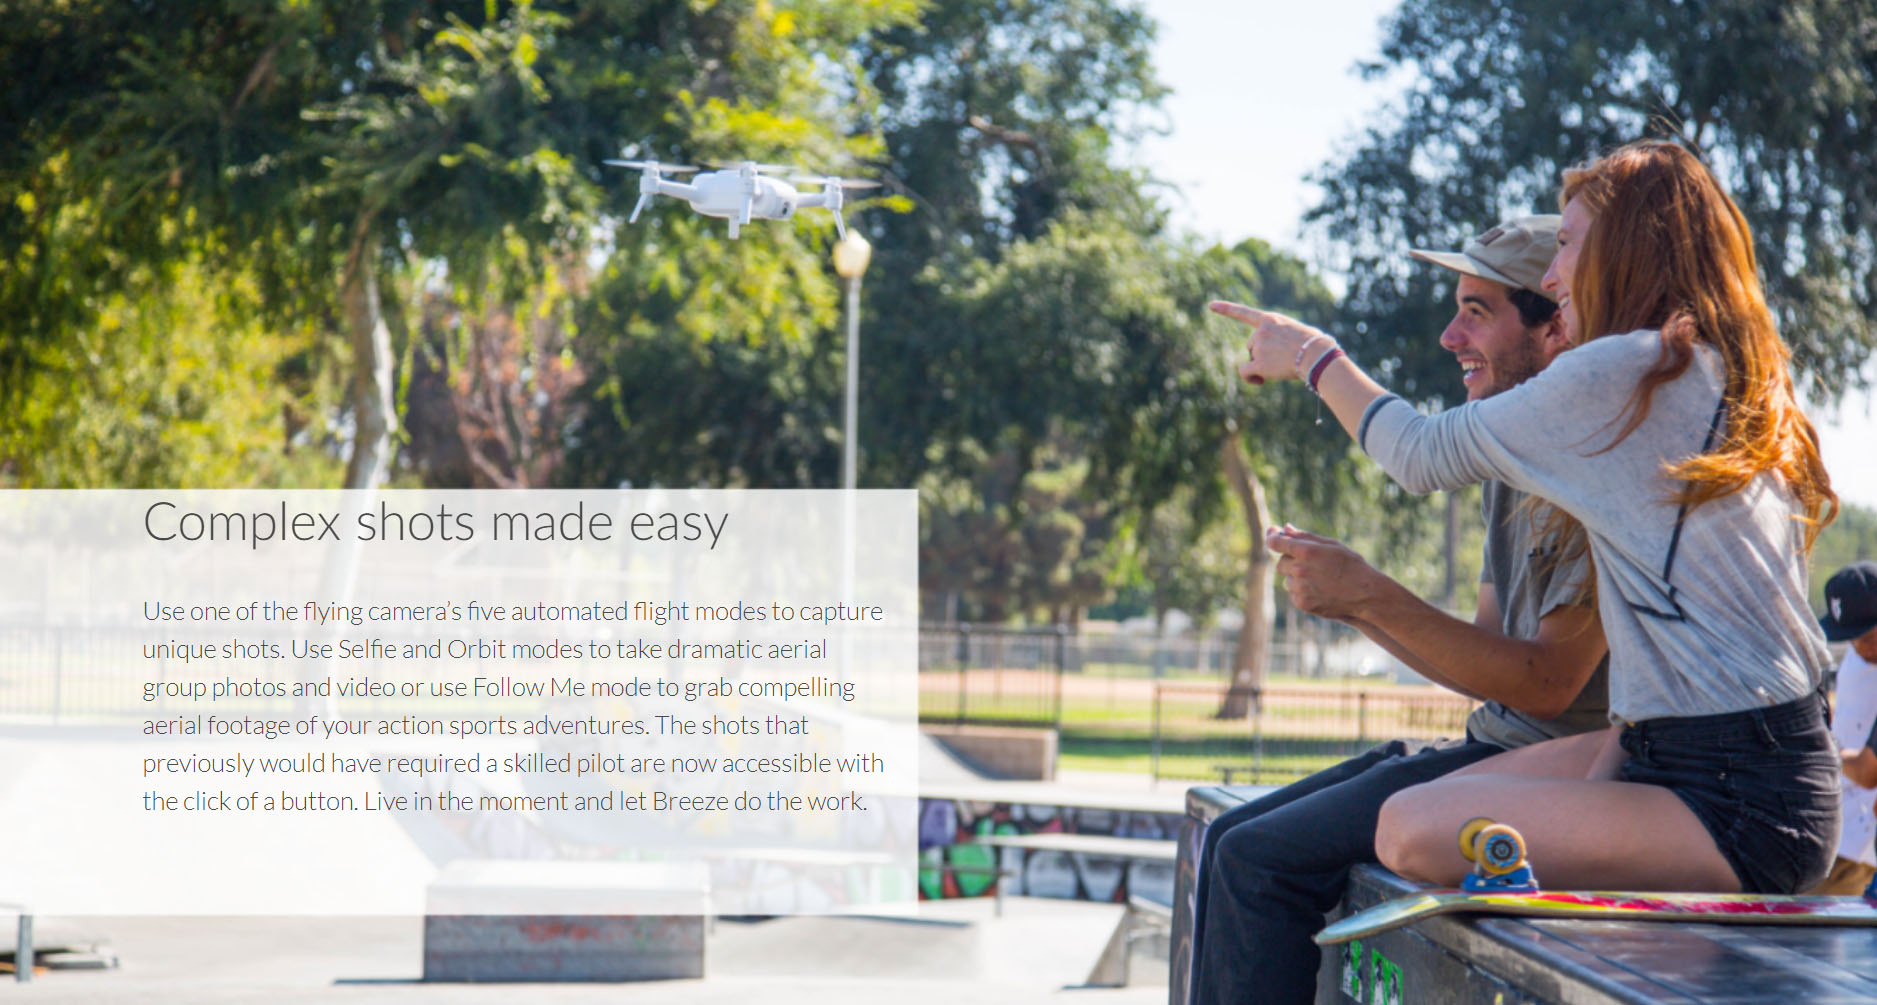 Yuneec Breeze Five Automated Flight Modes